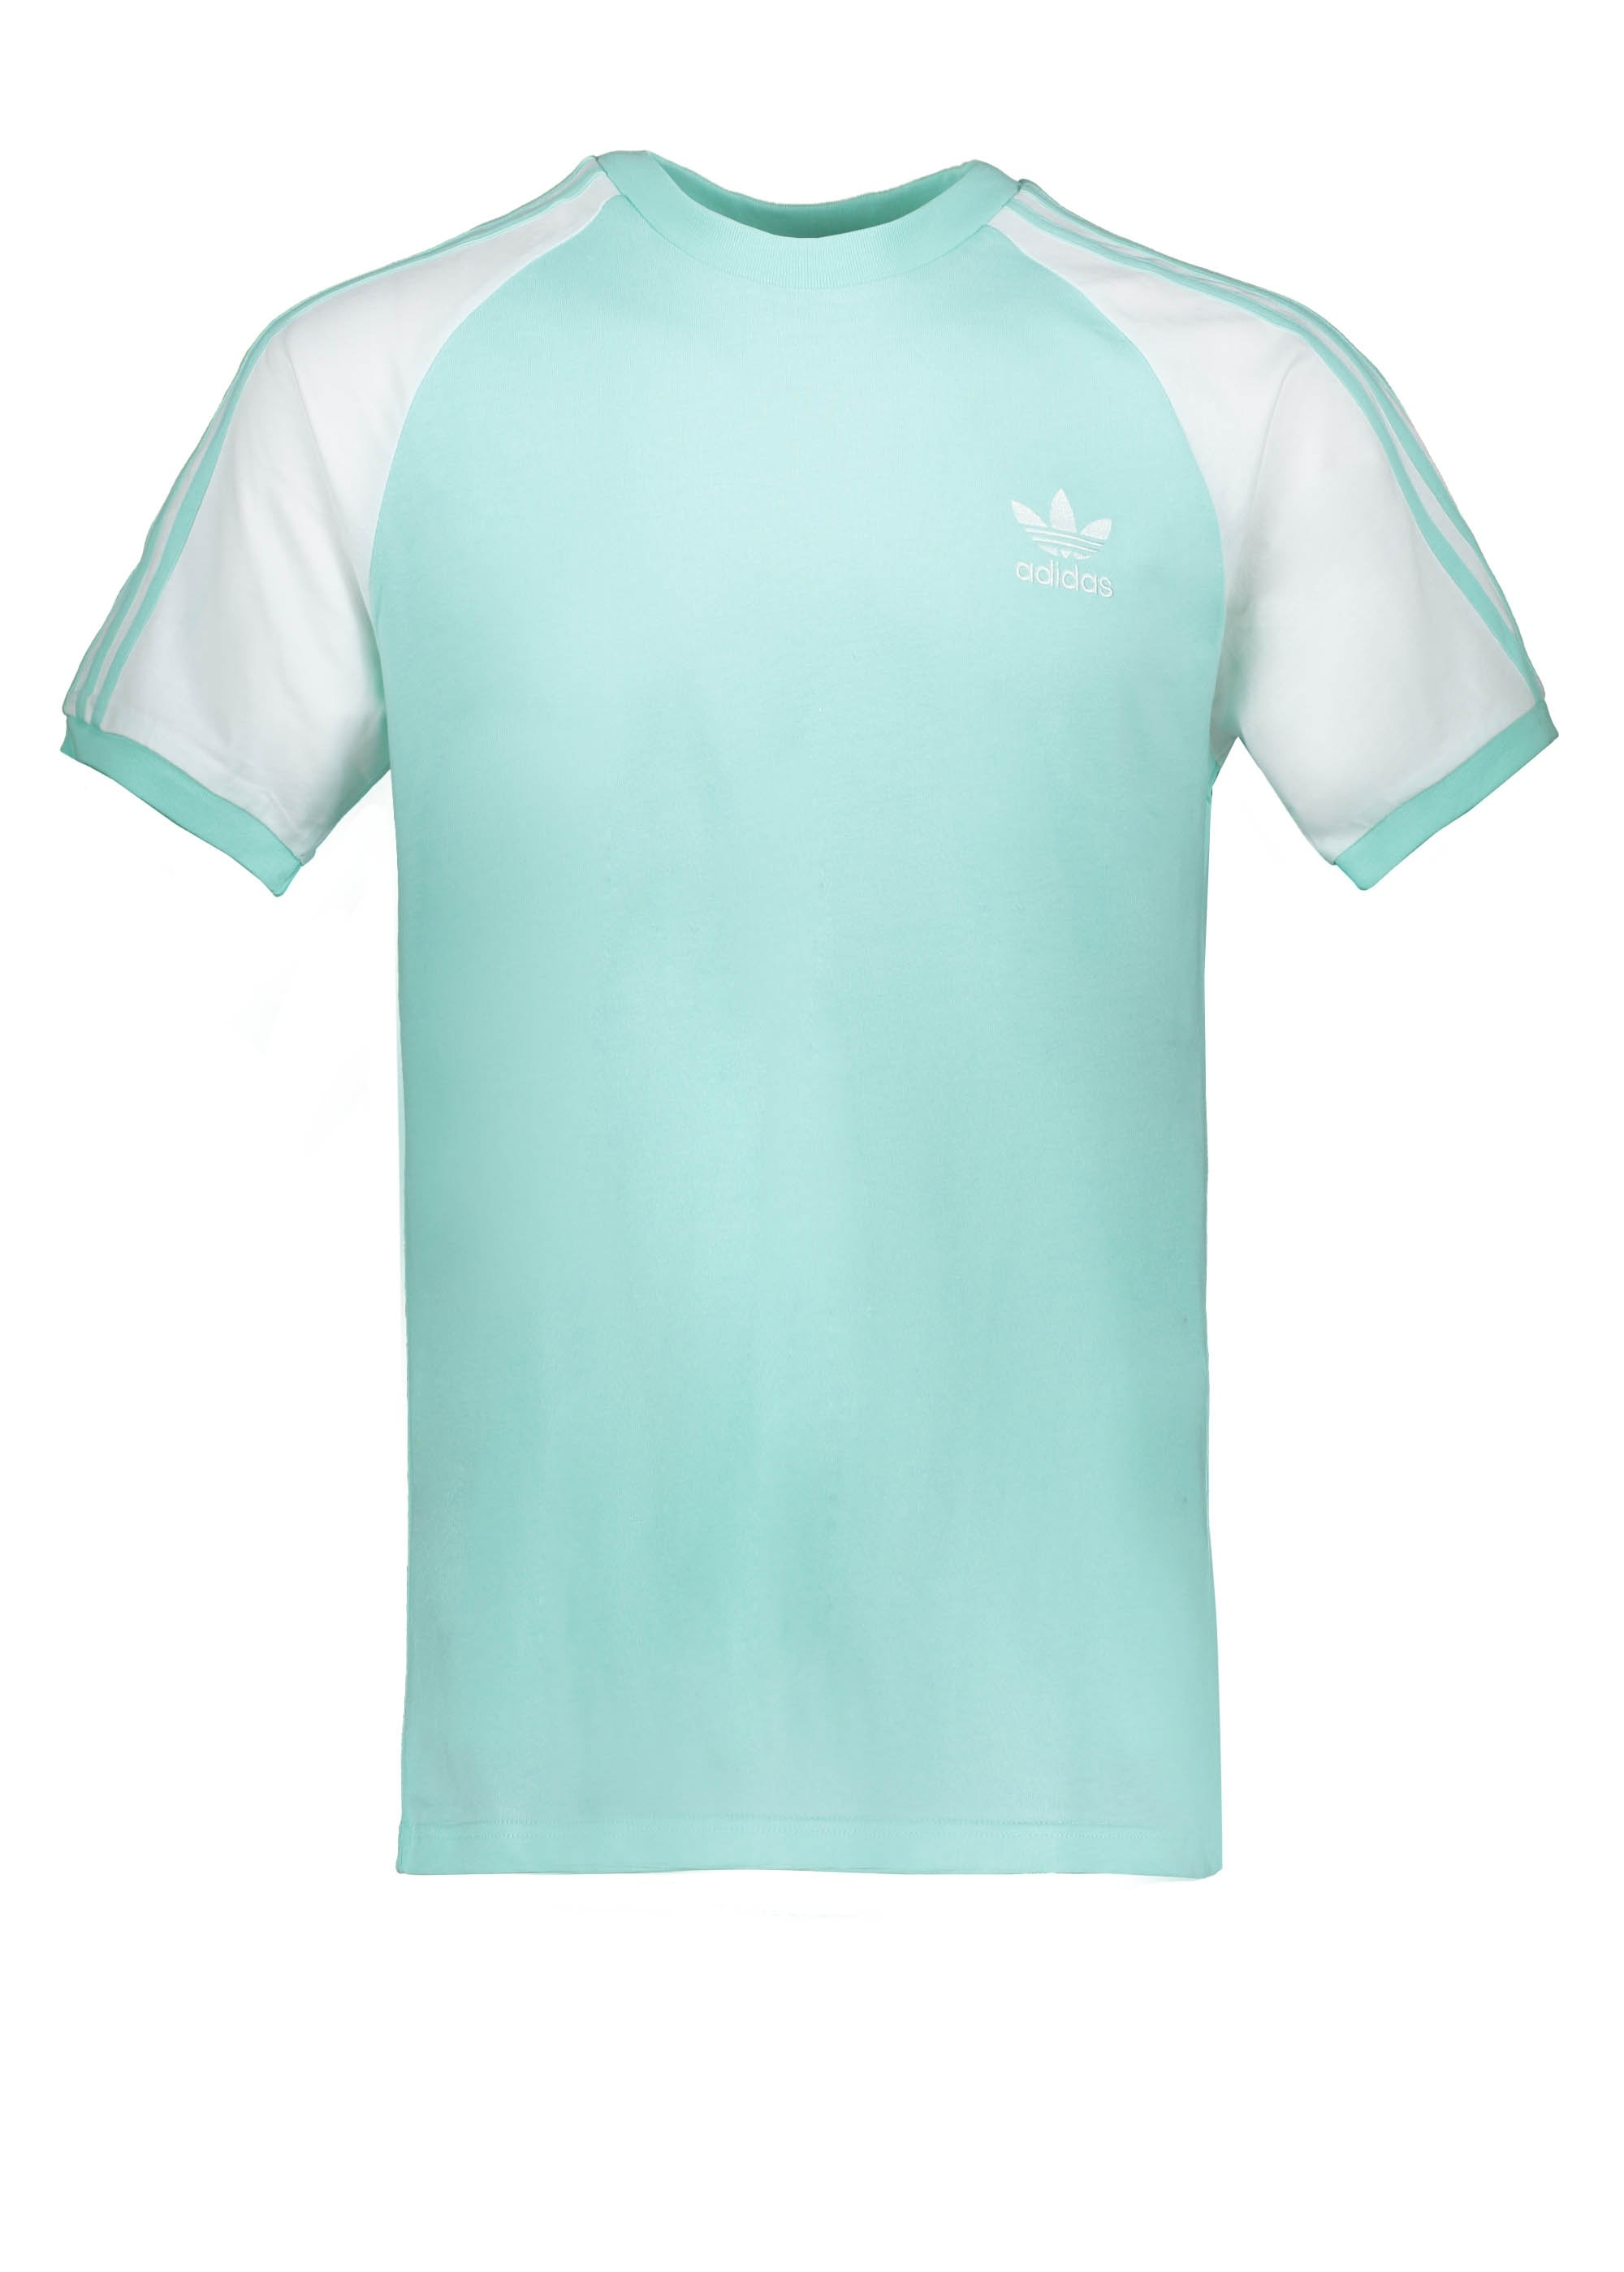 adidas Originals Apparel 3-Stripes Tee - Clear Mint